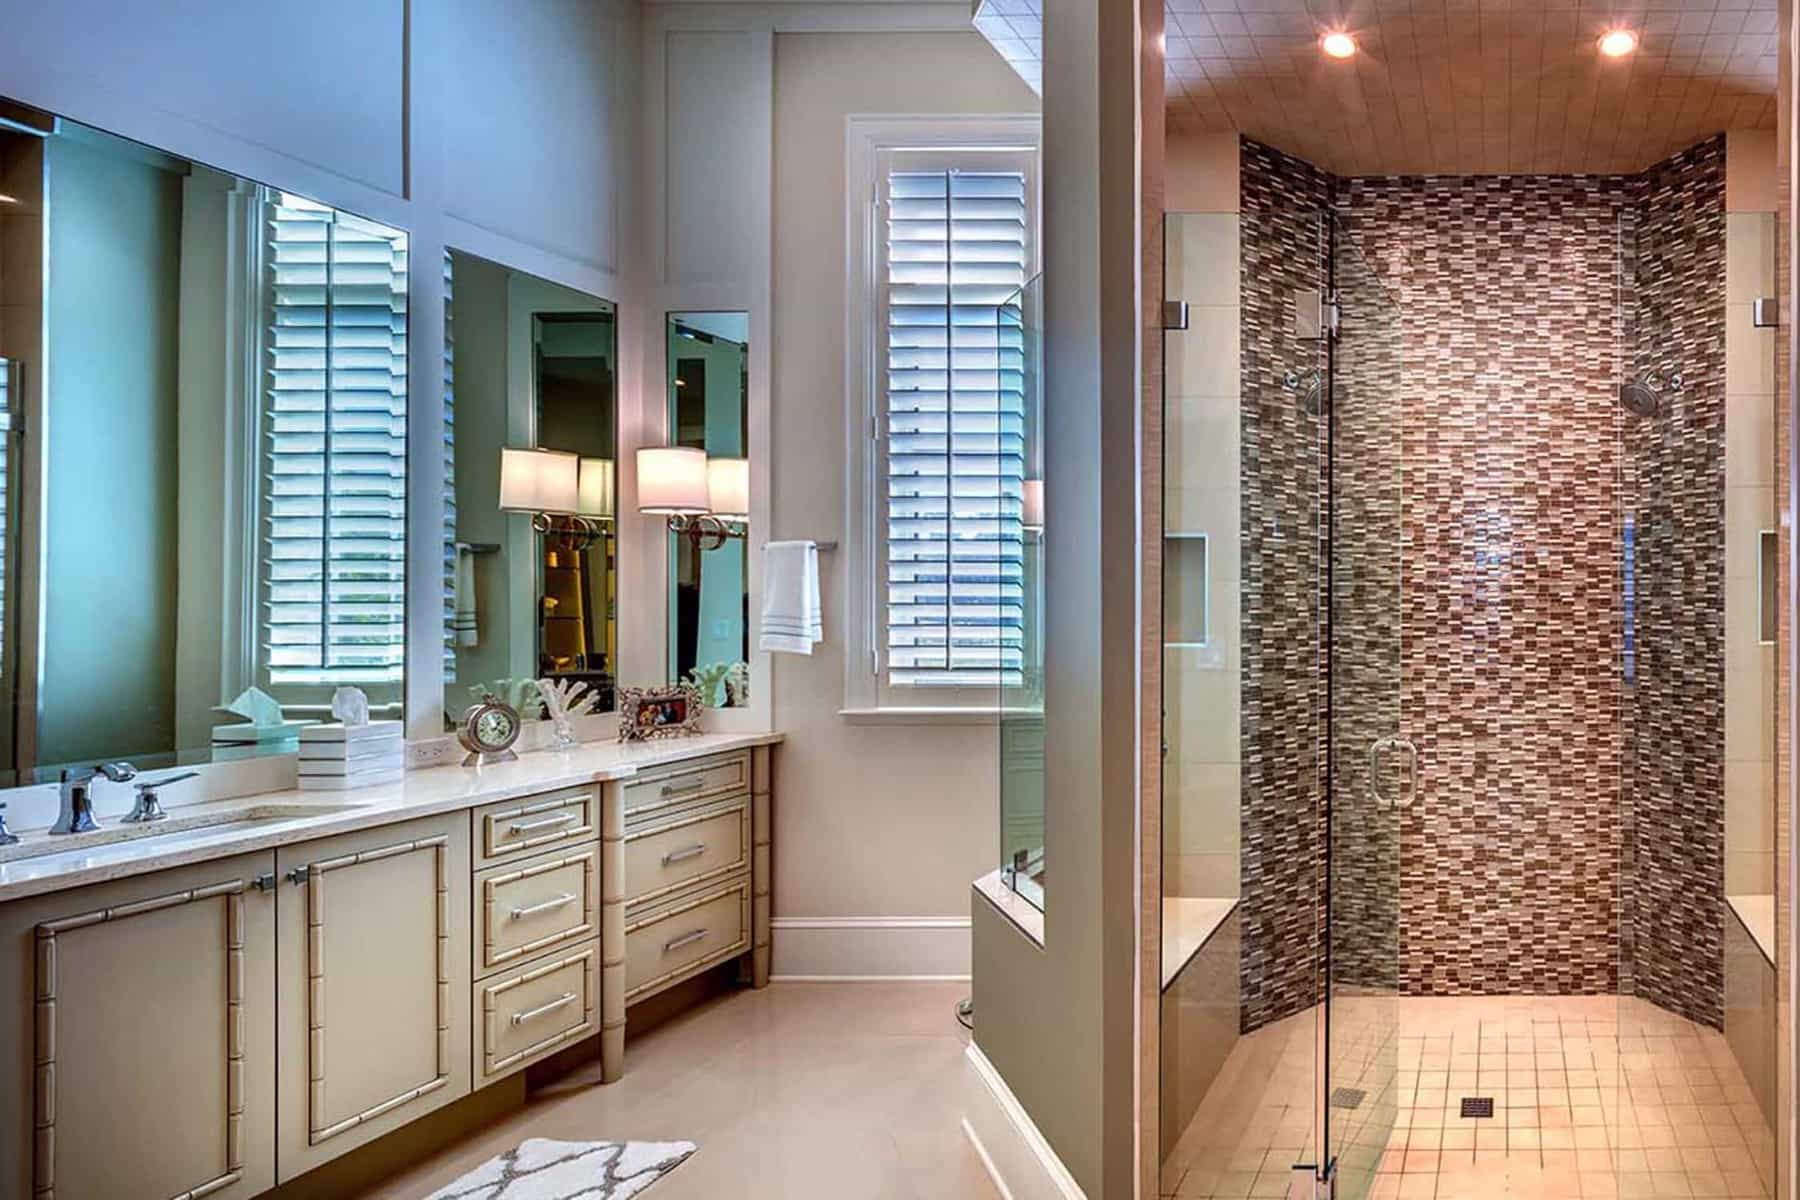 Featured Image of Coastal Single Vanity Bathroom With Brown Mosaic Tile Shower